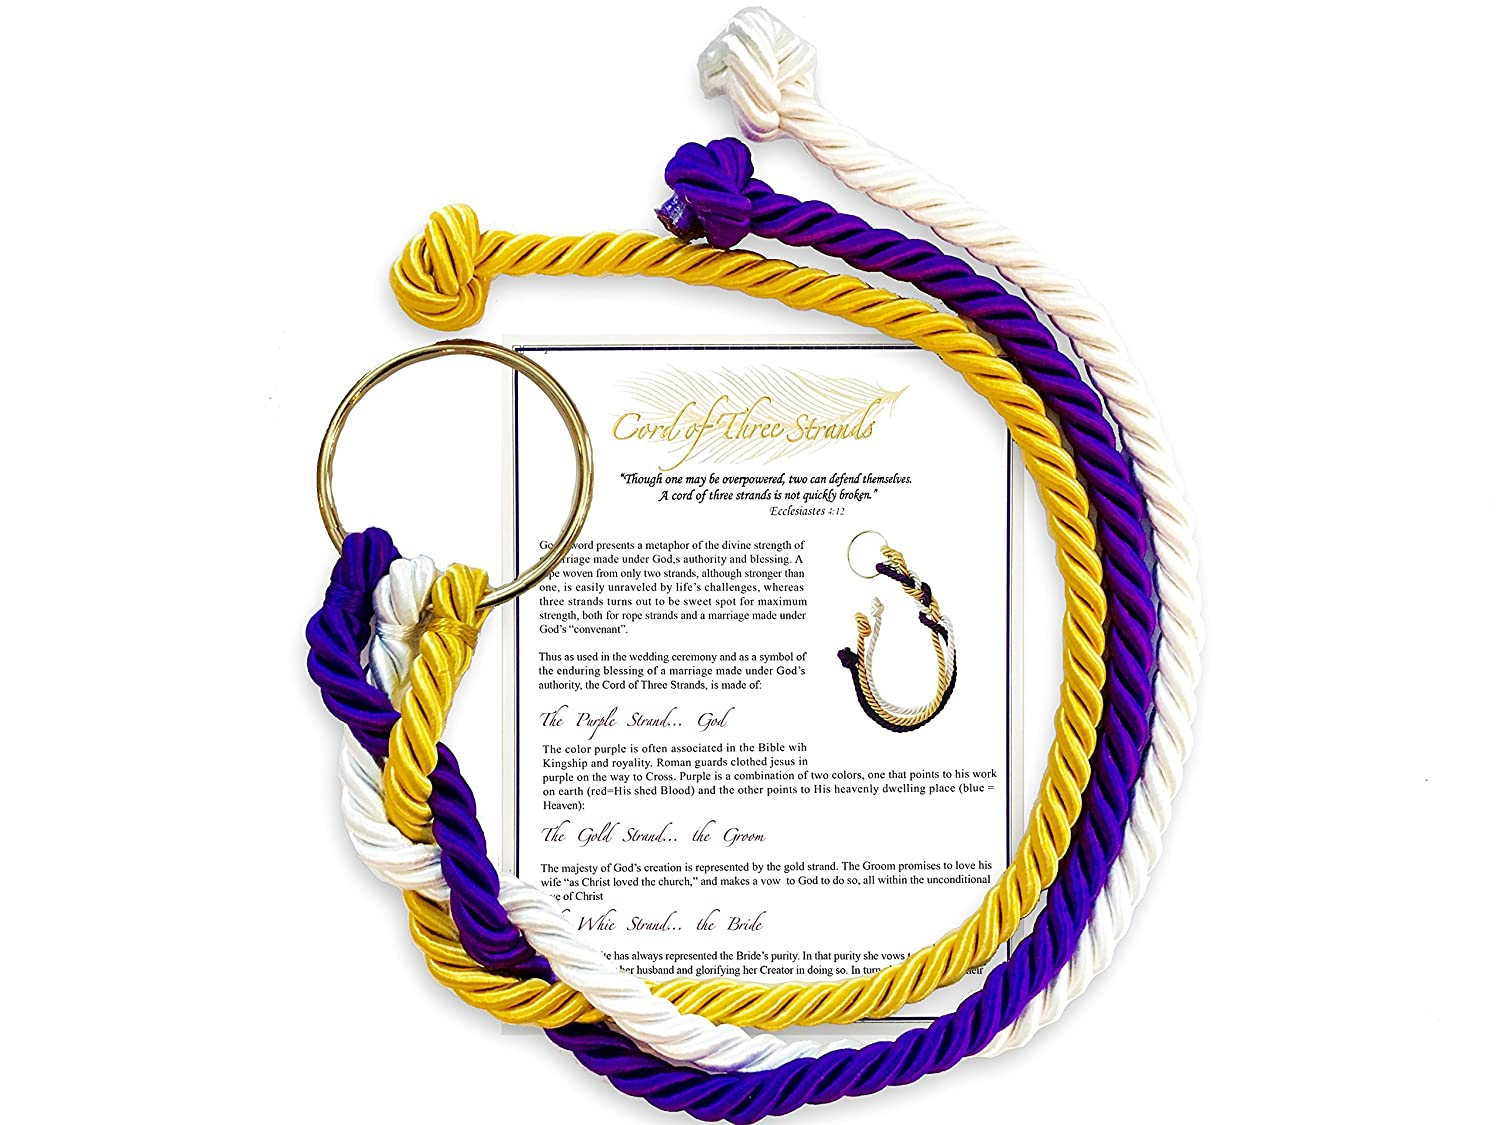 Wedding Bells Images.A Stunning Cord Of Three Strands Wedding Knot With Ceremony Card By Wedding Bells Pro